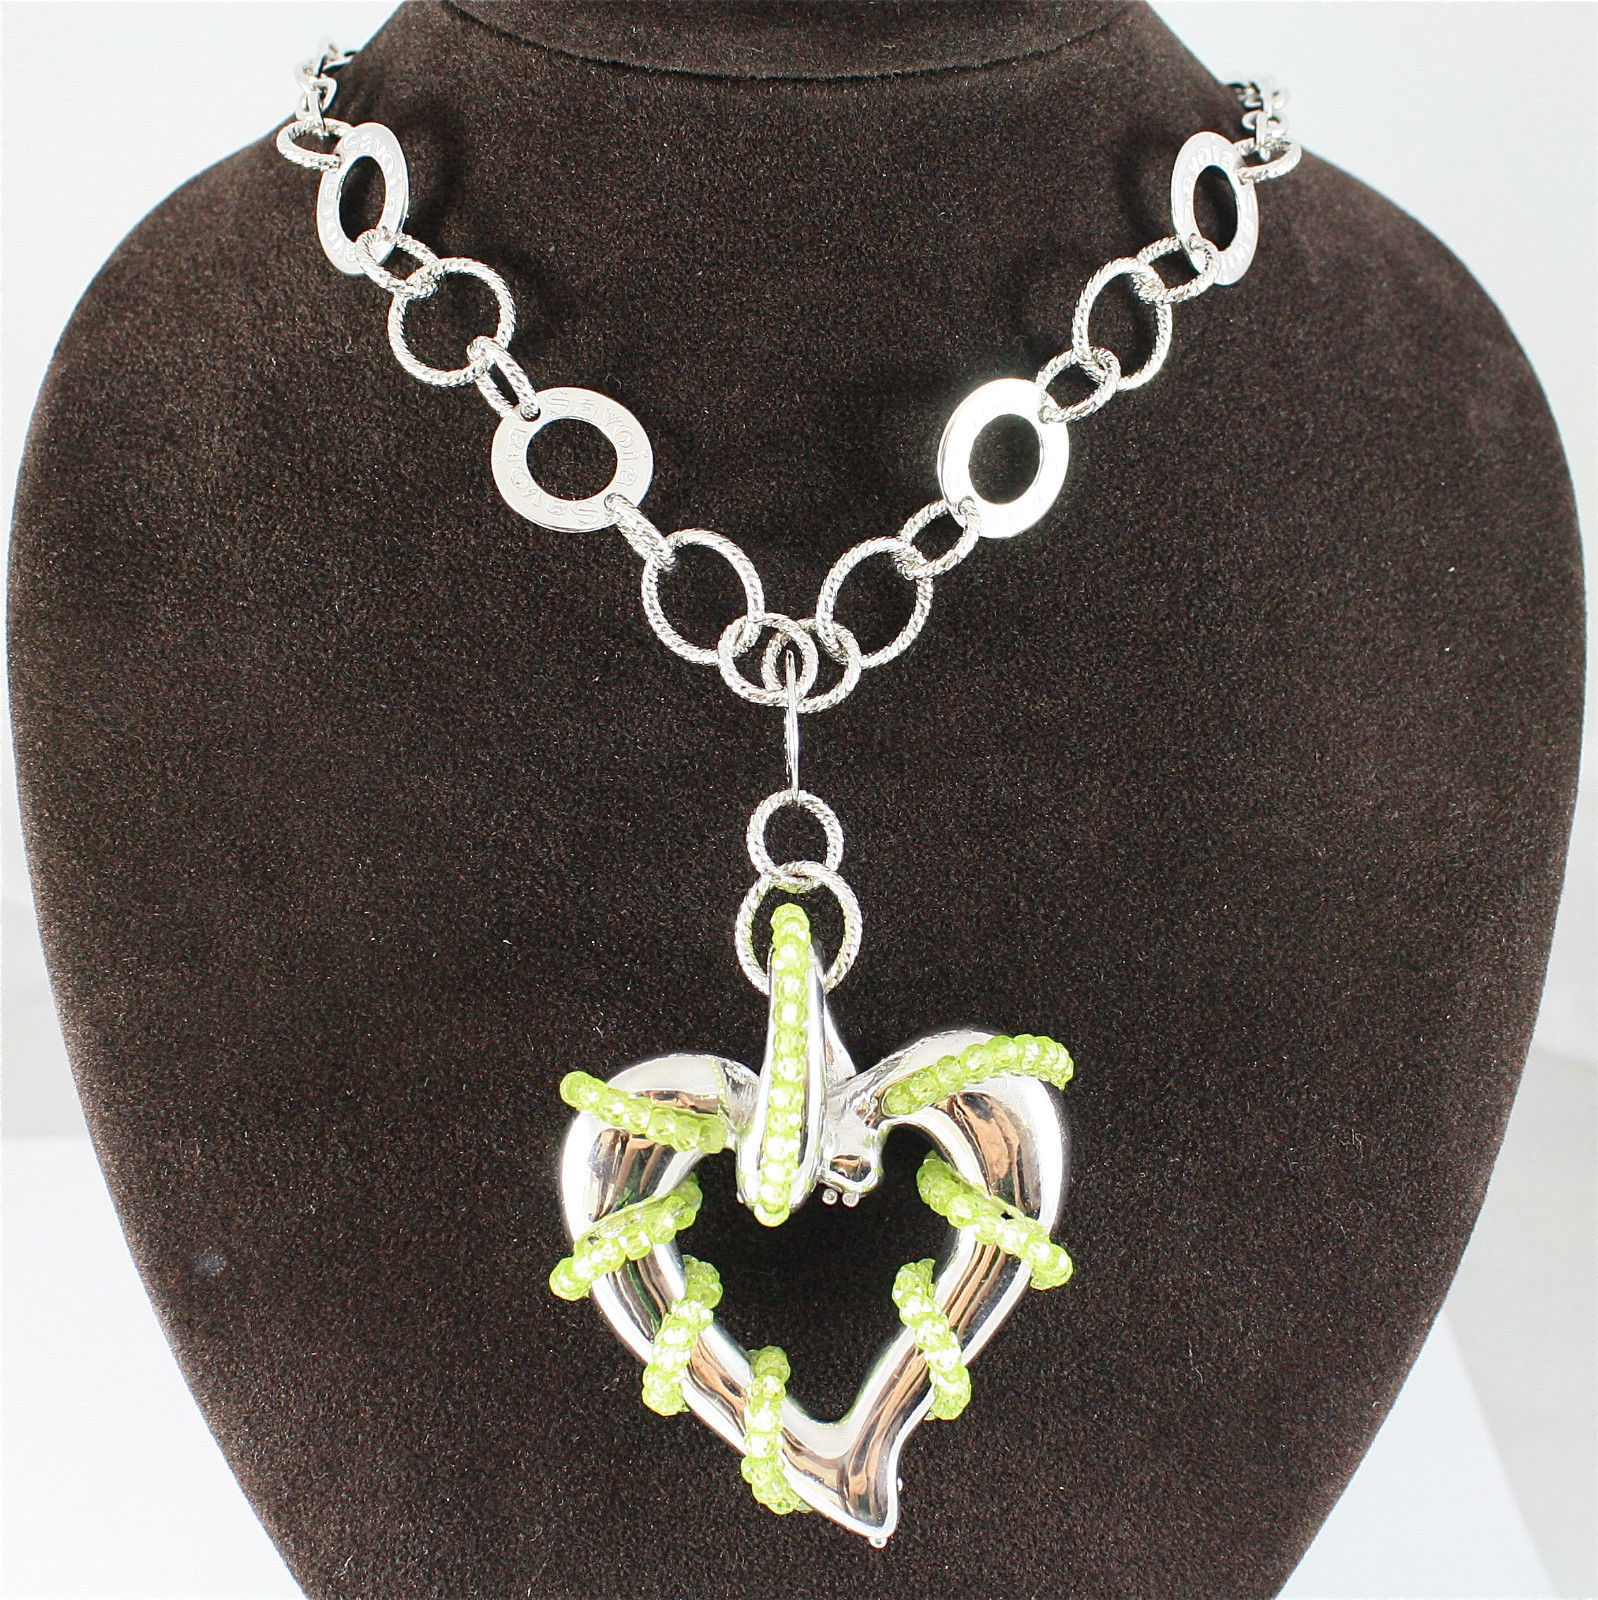 925 RHODIUM SILVER PENDANT WITH FACETED PERIDOT MADE IN ITALY BY SAVOIA JEWELS